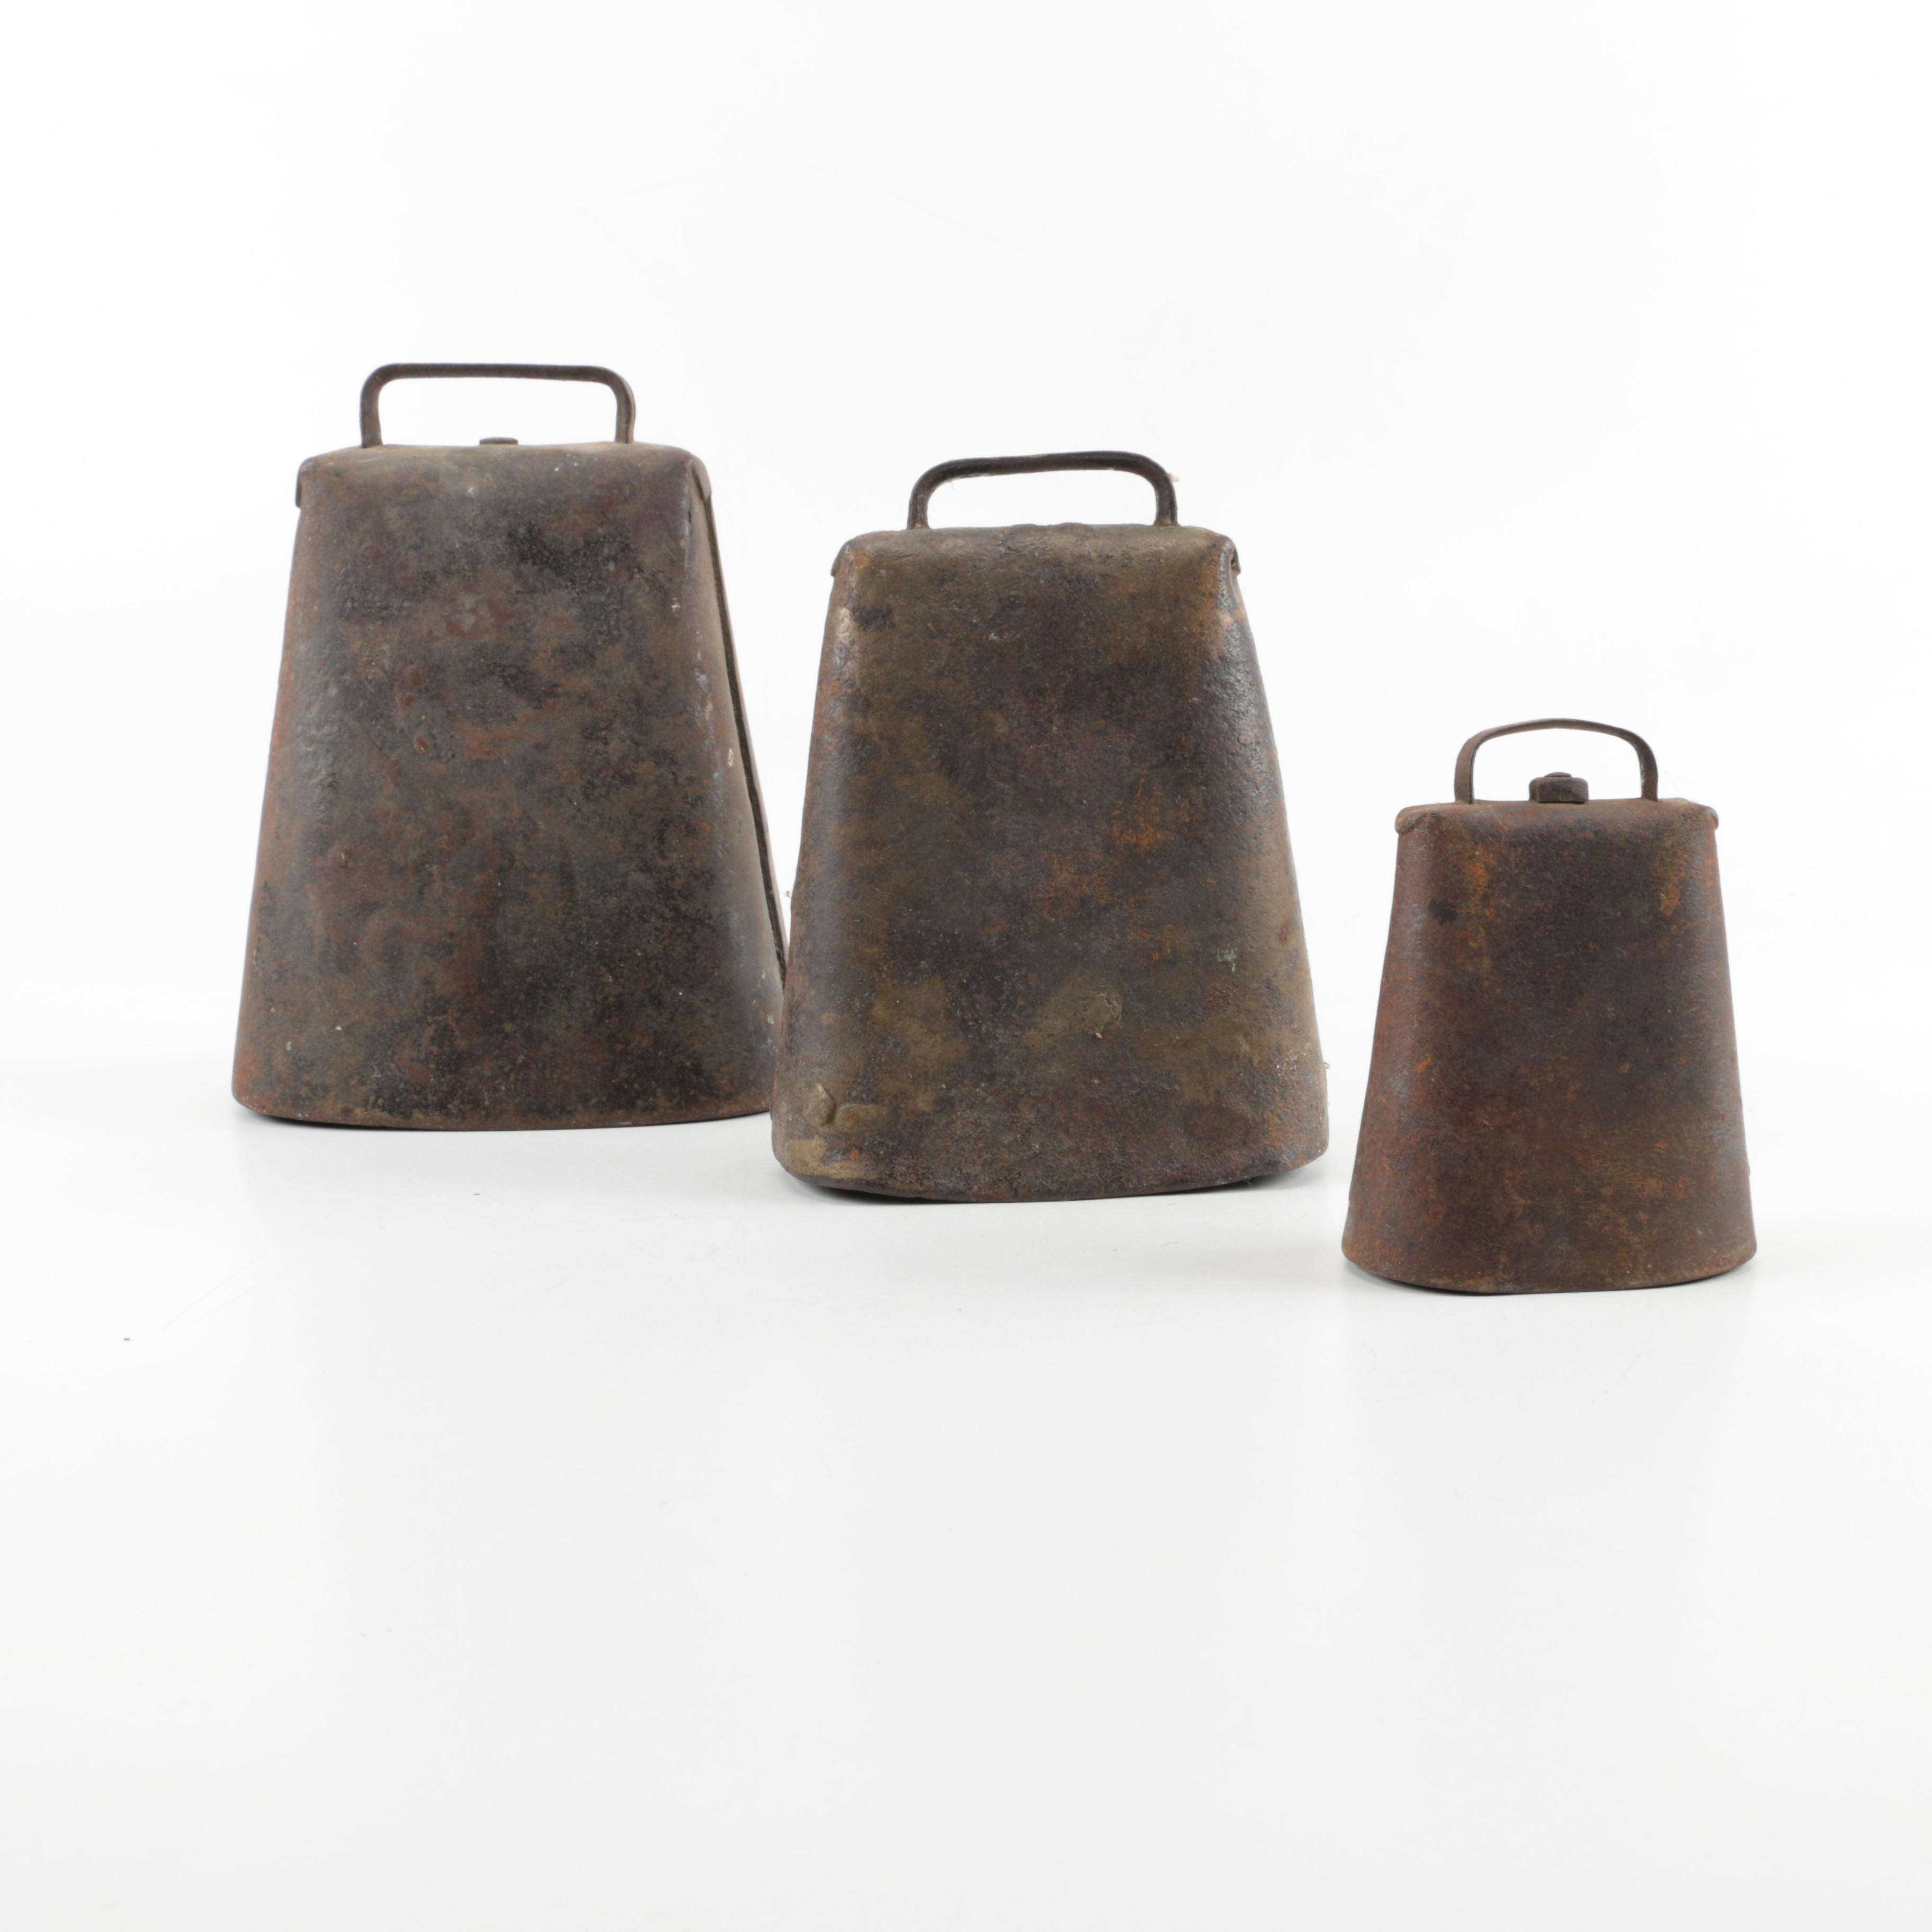 Collection of Three Vintage Cowbells